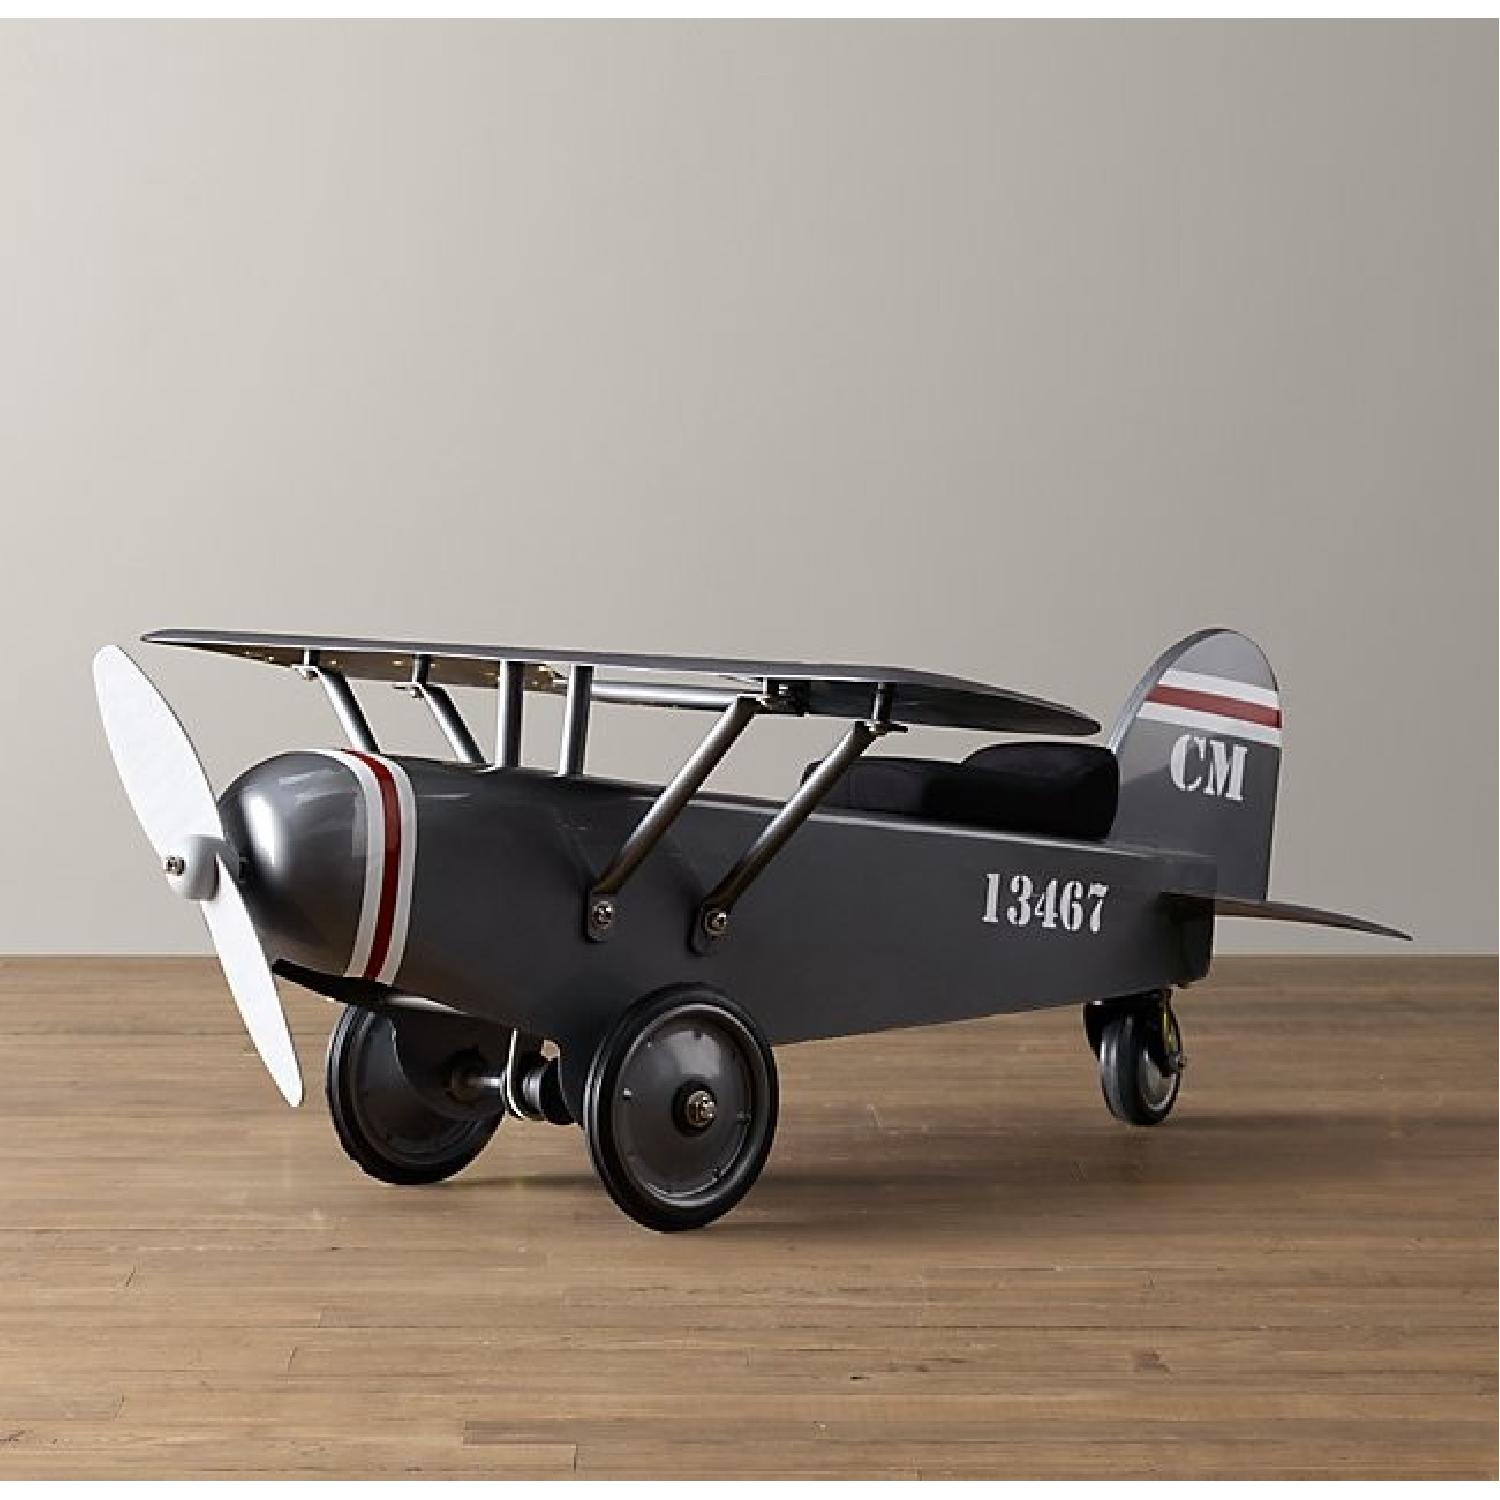 Restoration Hardware Baby and Child Vintage Army Plane Scoot-0